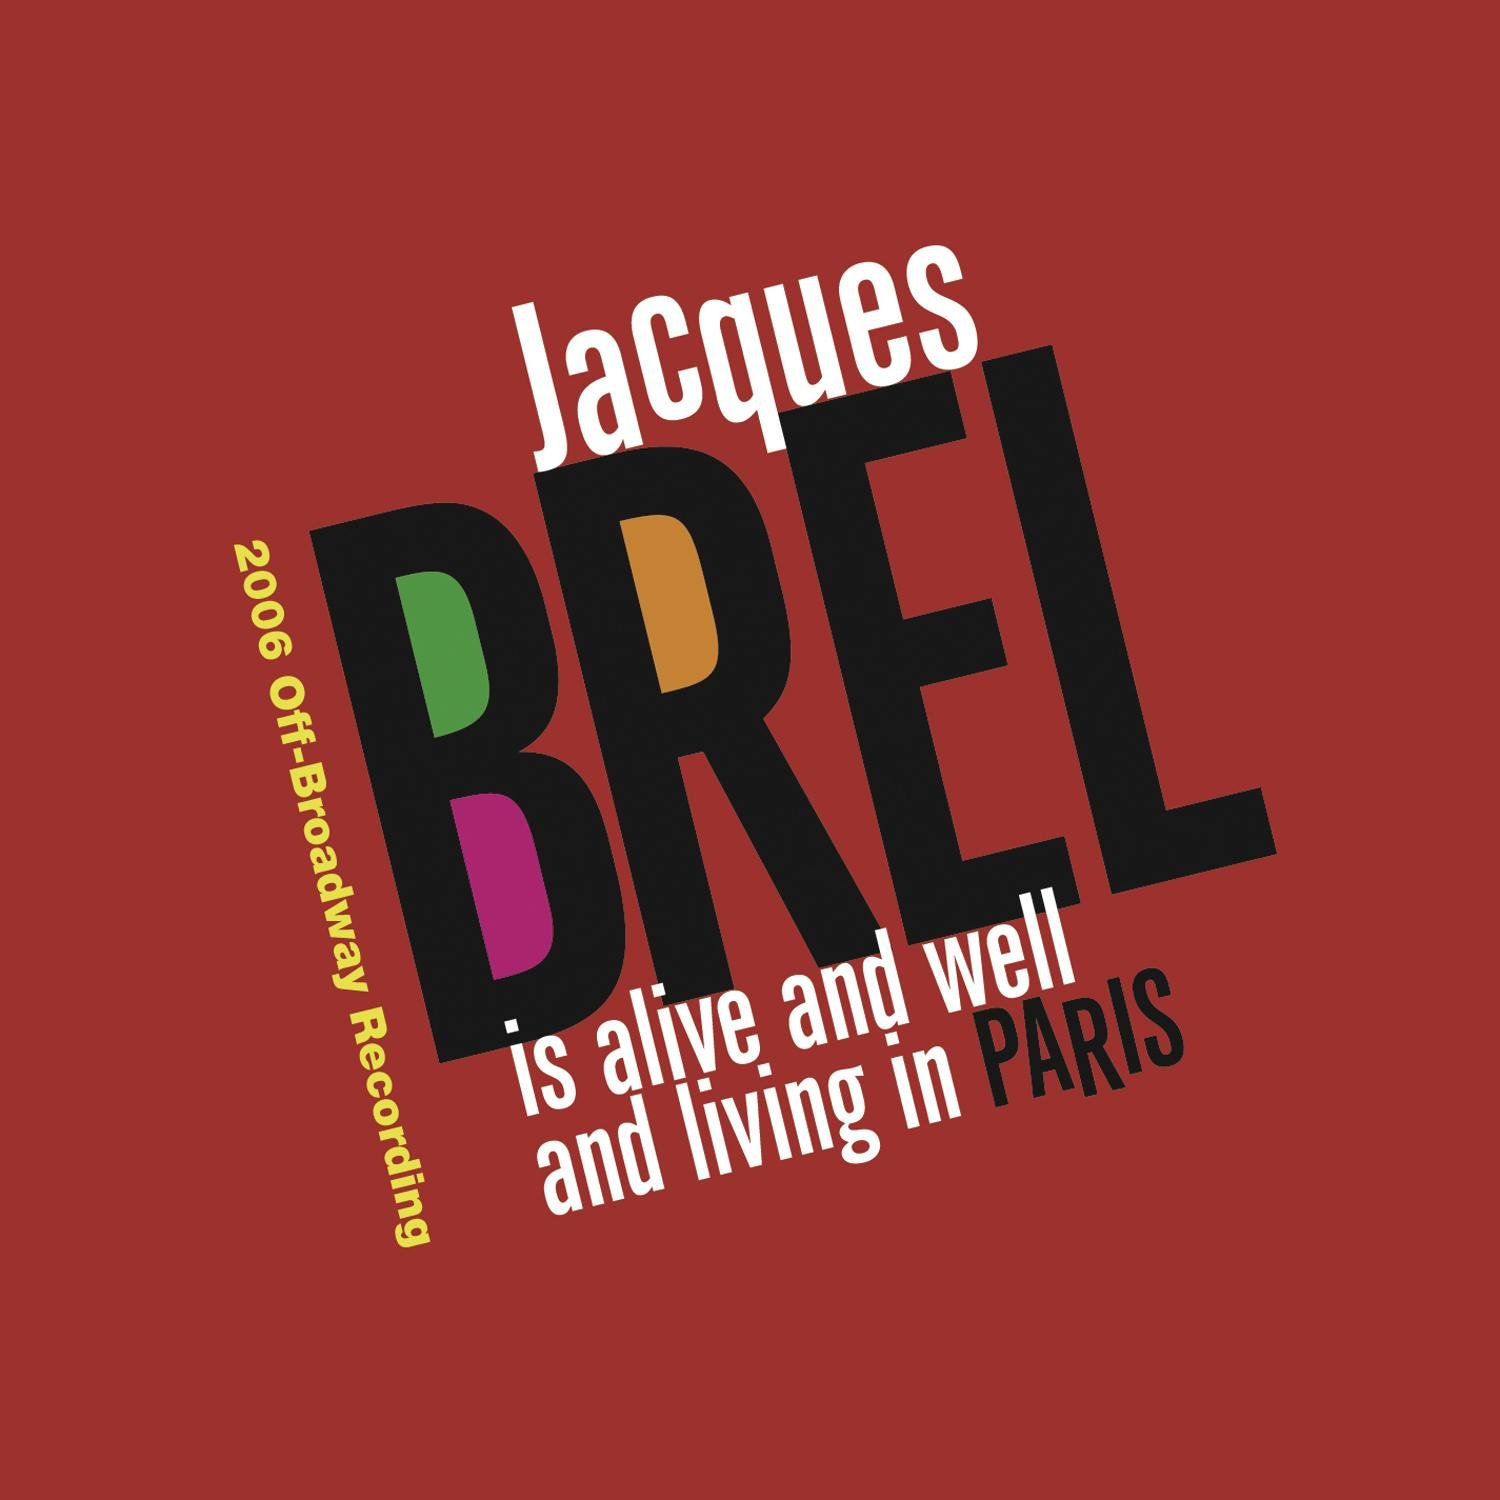 security Jacques Brel Is Alive Many popular brands And Paris In Well Living